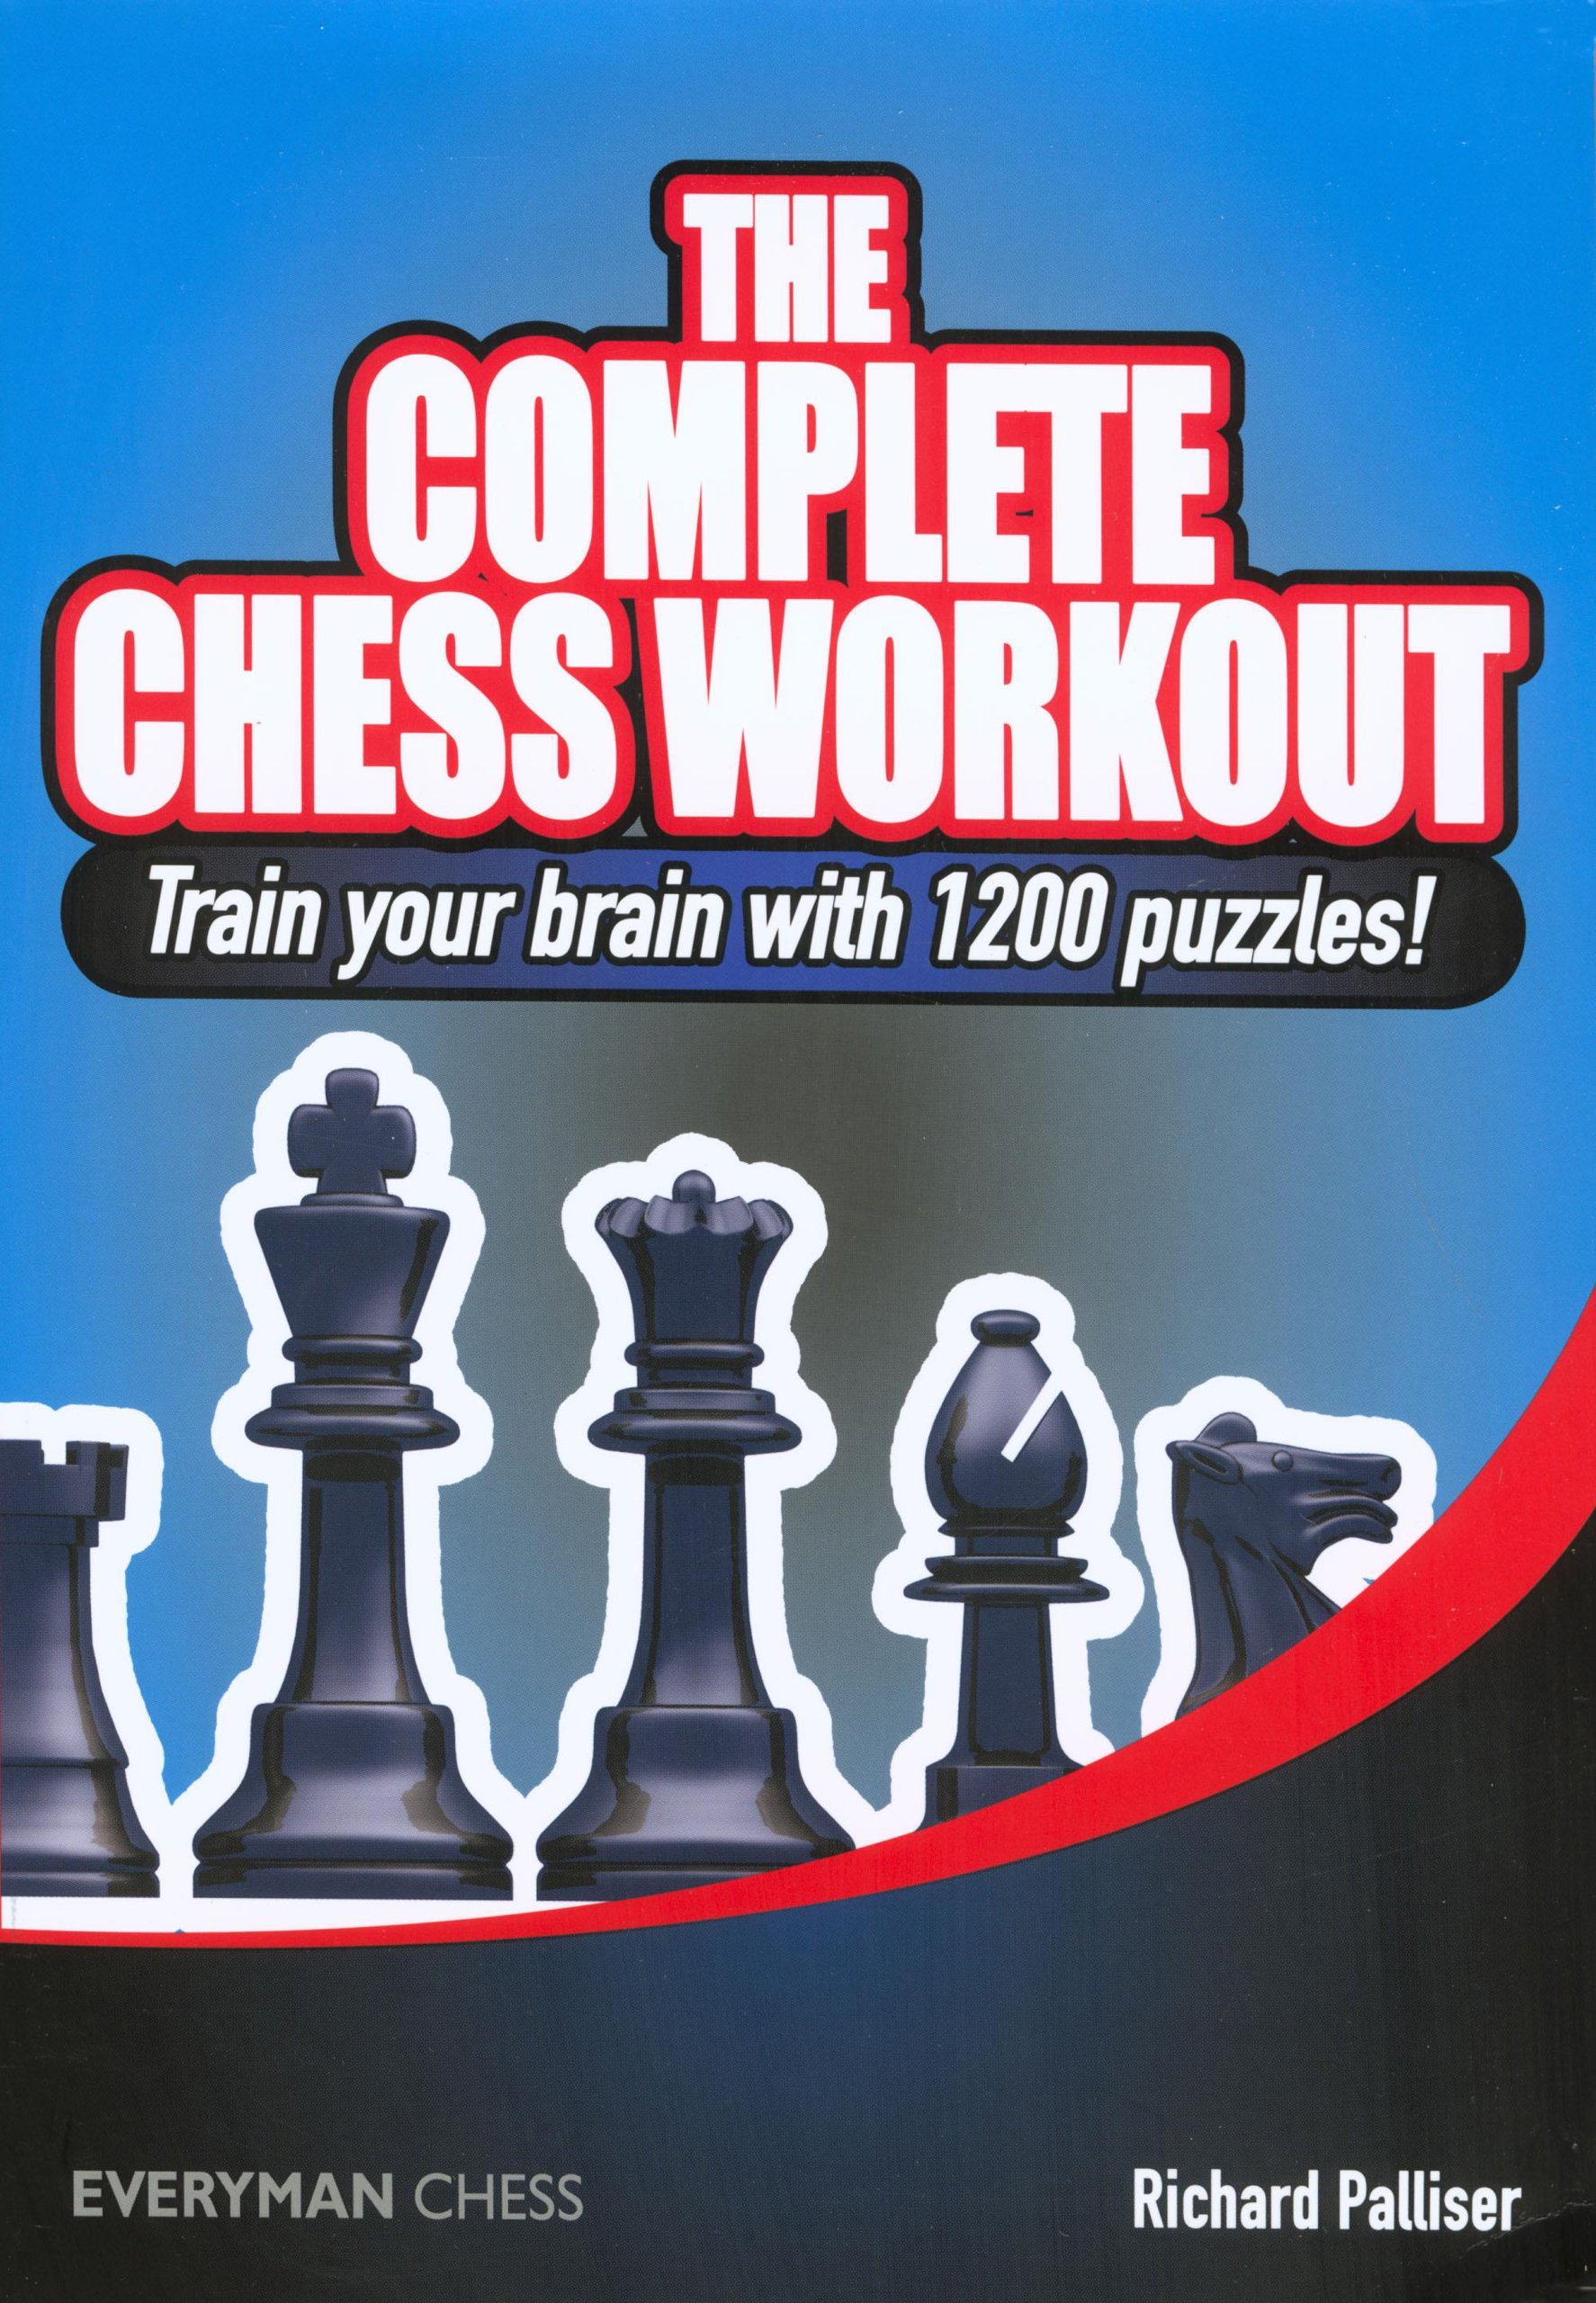 The Complete Chess Workout Train Your Brain With 1200 Puzzles Checkmate Diagram Puzzle From Everyman Richard Palliser 9781857445329 Books